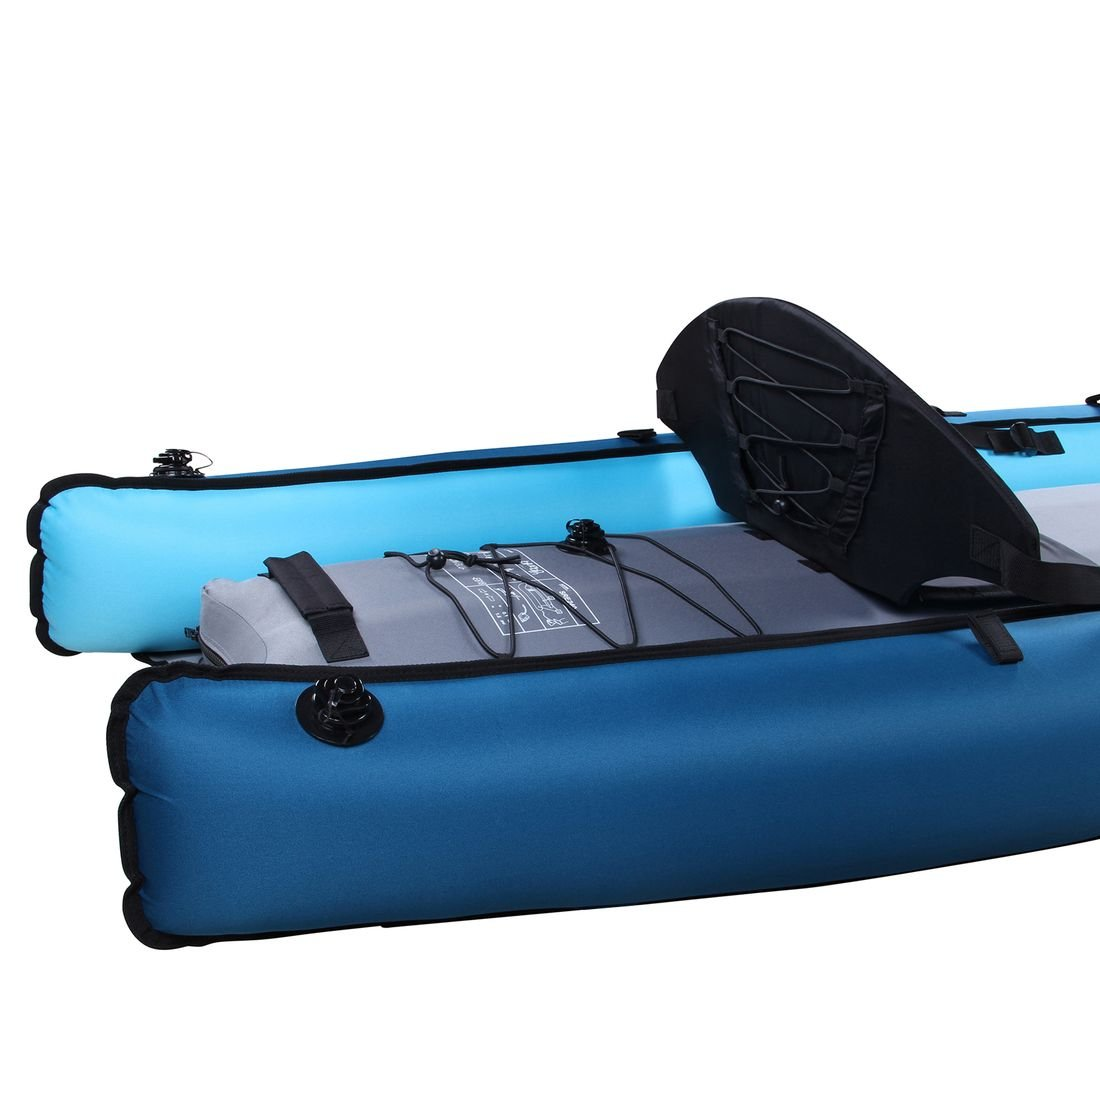 Kayak Blueborn Coasteer SRE240 Sit-On-Top Boat 1 Persona 240x88 cm Canoa Bote Inflable Azul